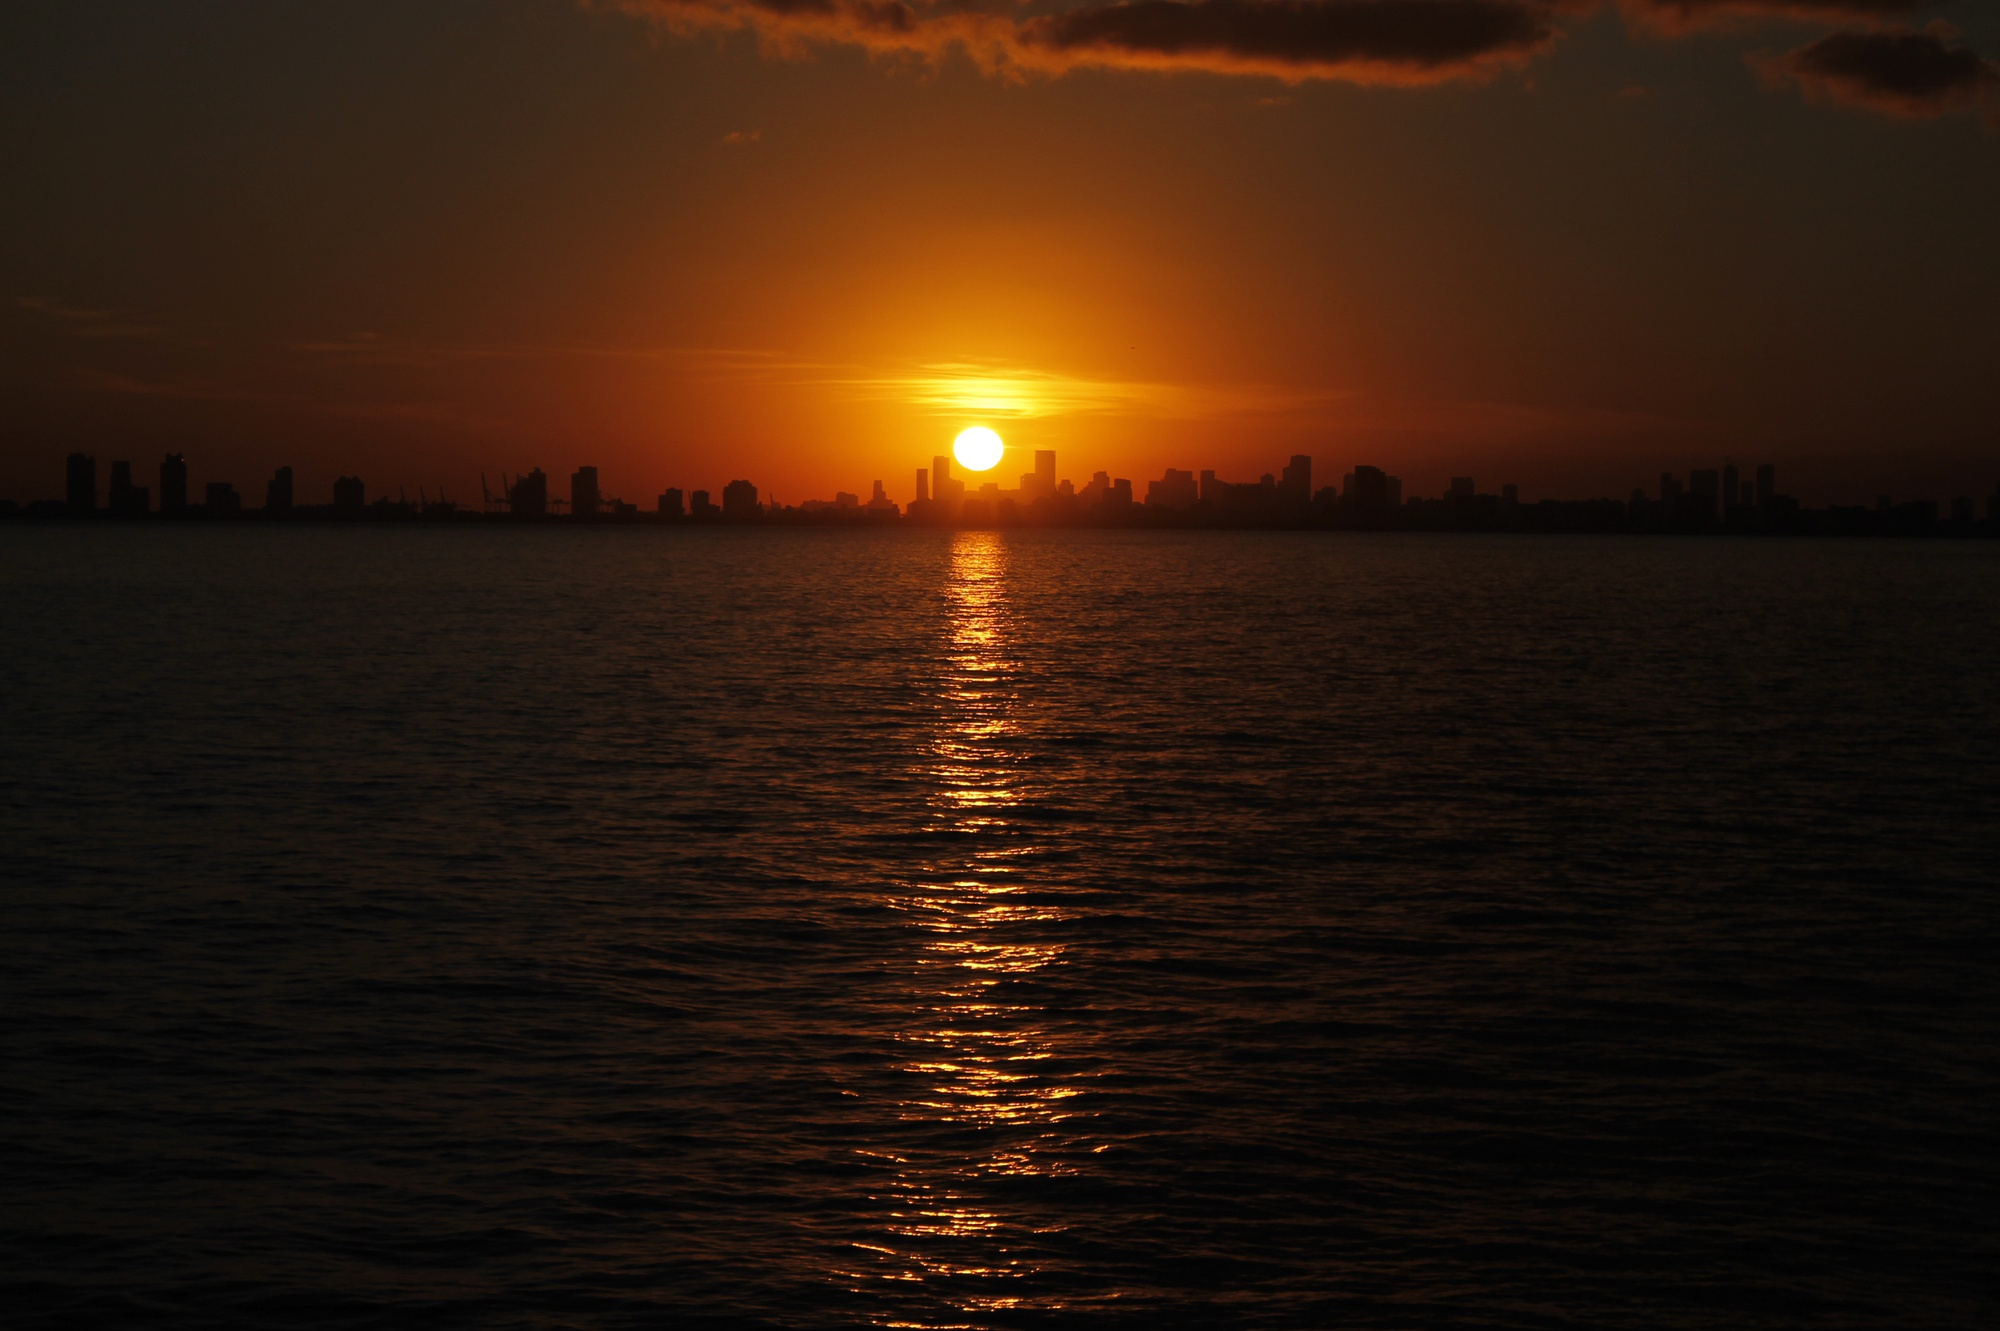 Leaving Florida with a stunning sunset over Miami, we saw the last sunlight of 2017. The ship left from Fort Lauderdale, putting us in perfect position to see the last sunset of the year over the city.